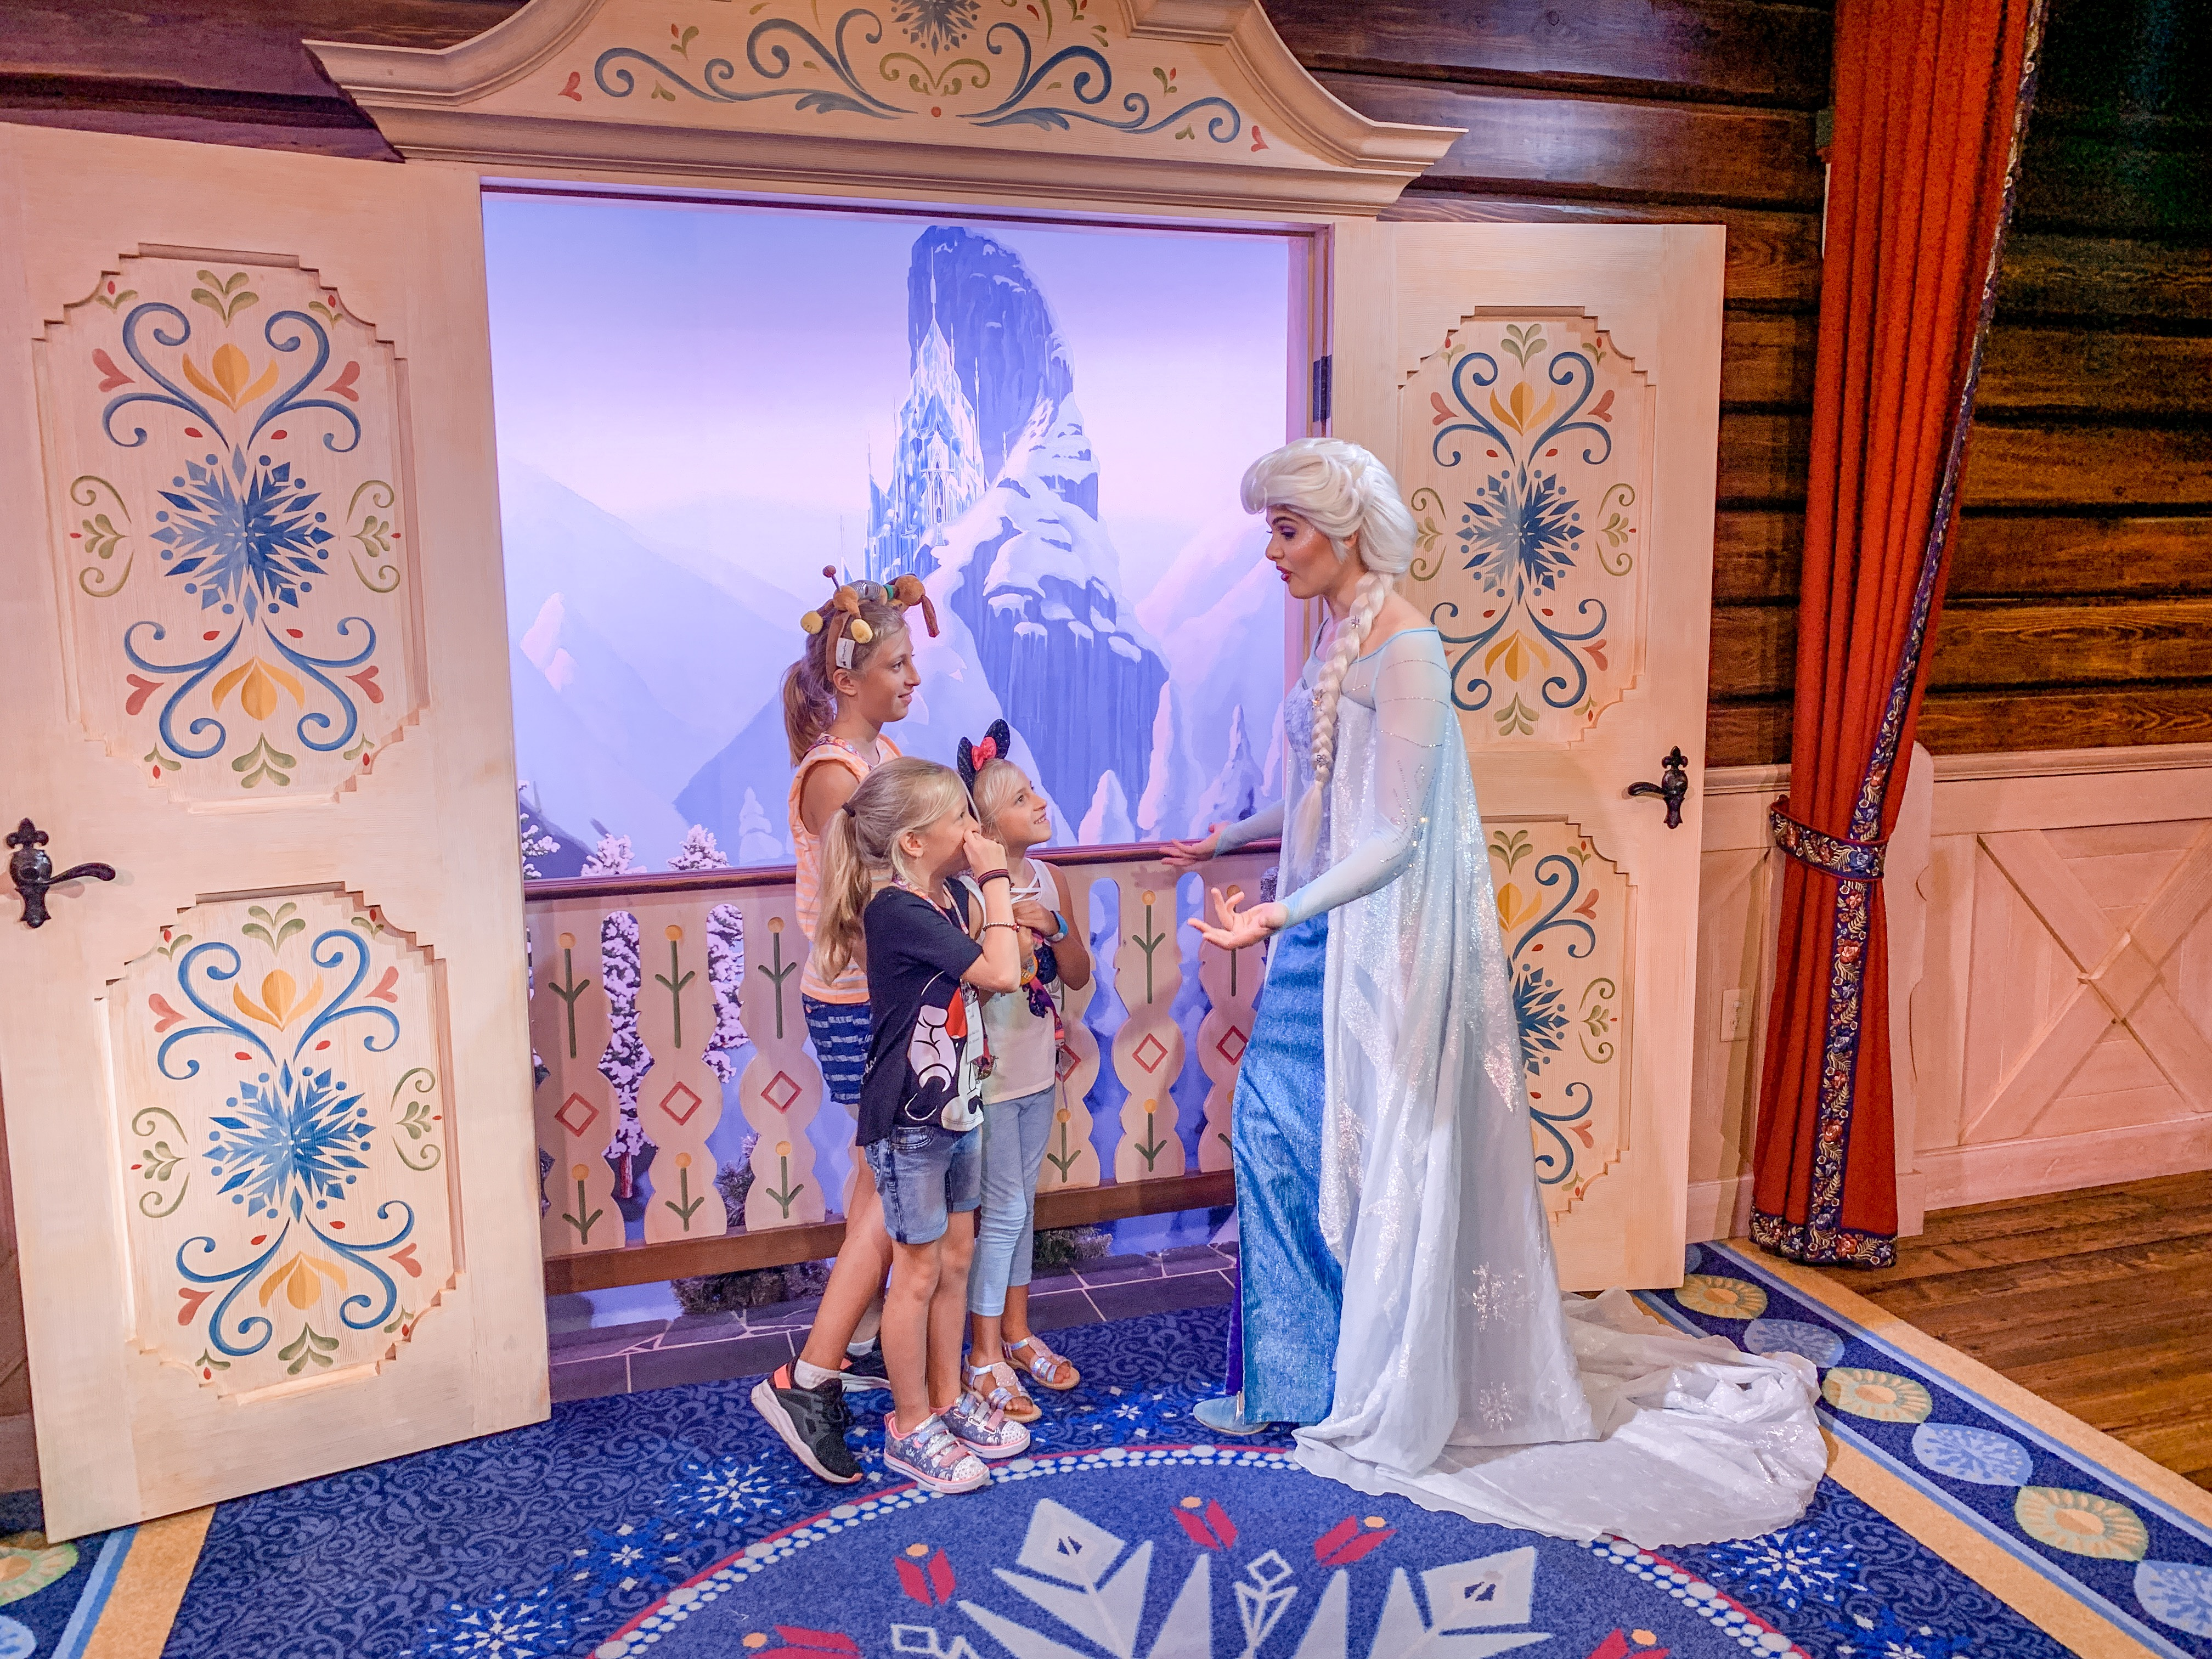 How to save money at Disney - have photographers use your camera.